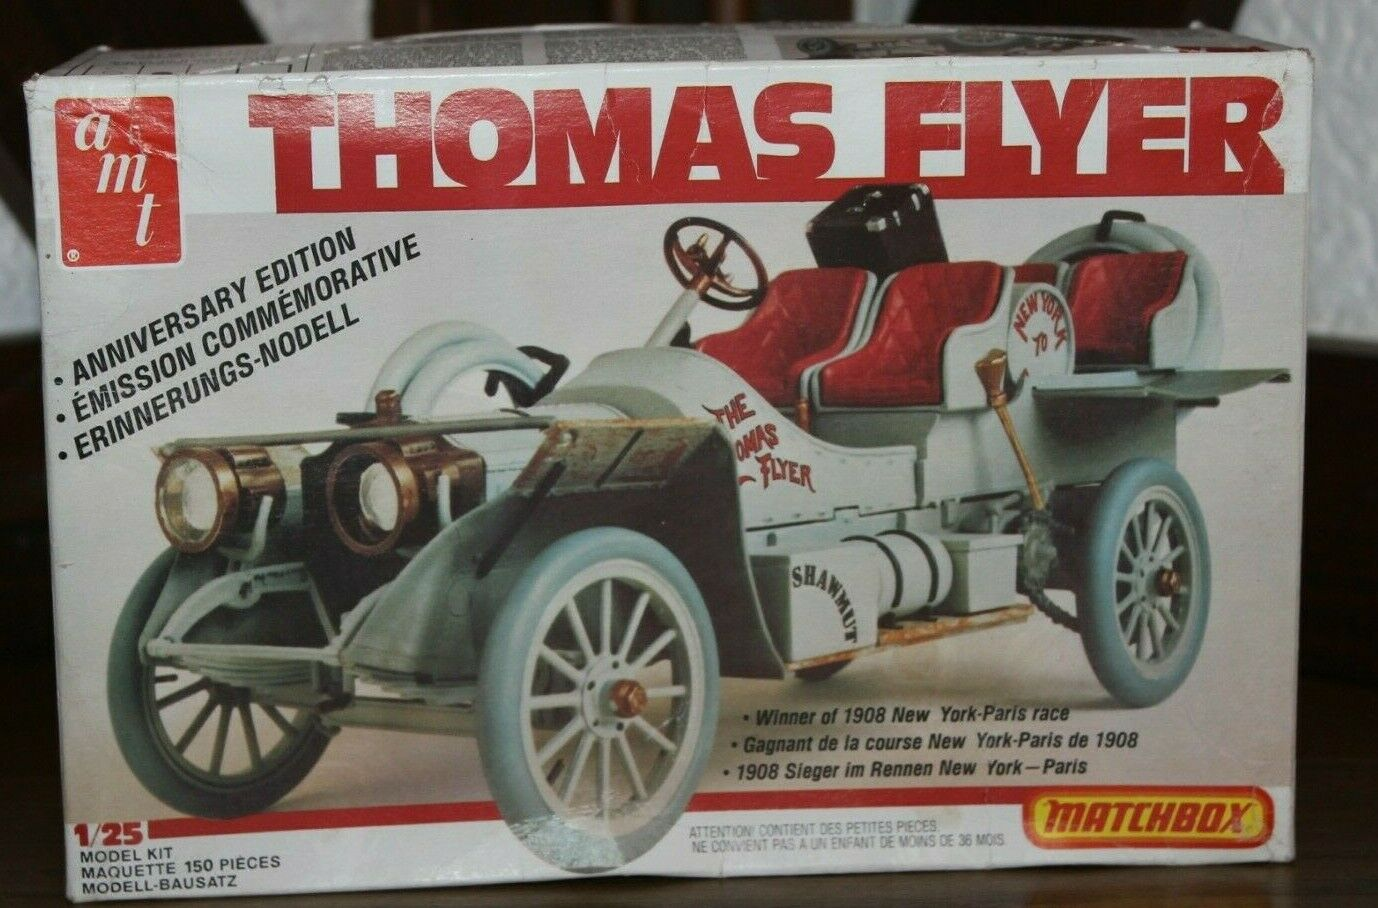 Amt  PK-4101  1 25 Kit Thomas Fliegener  Anniversary Edition  Matchbox OVP